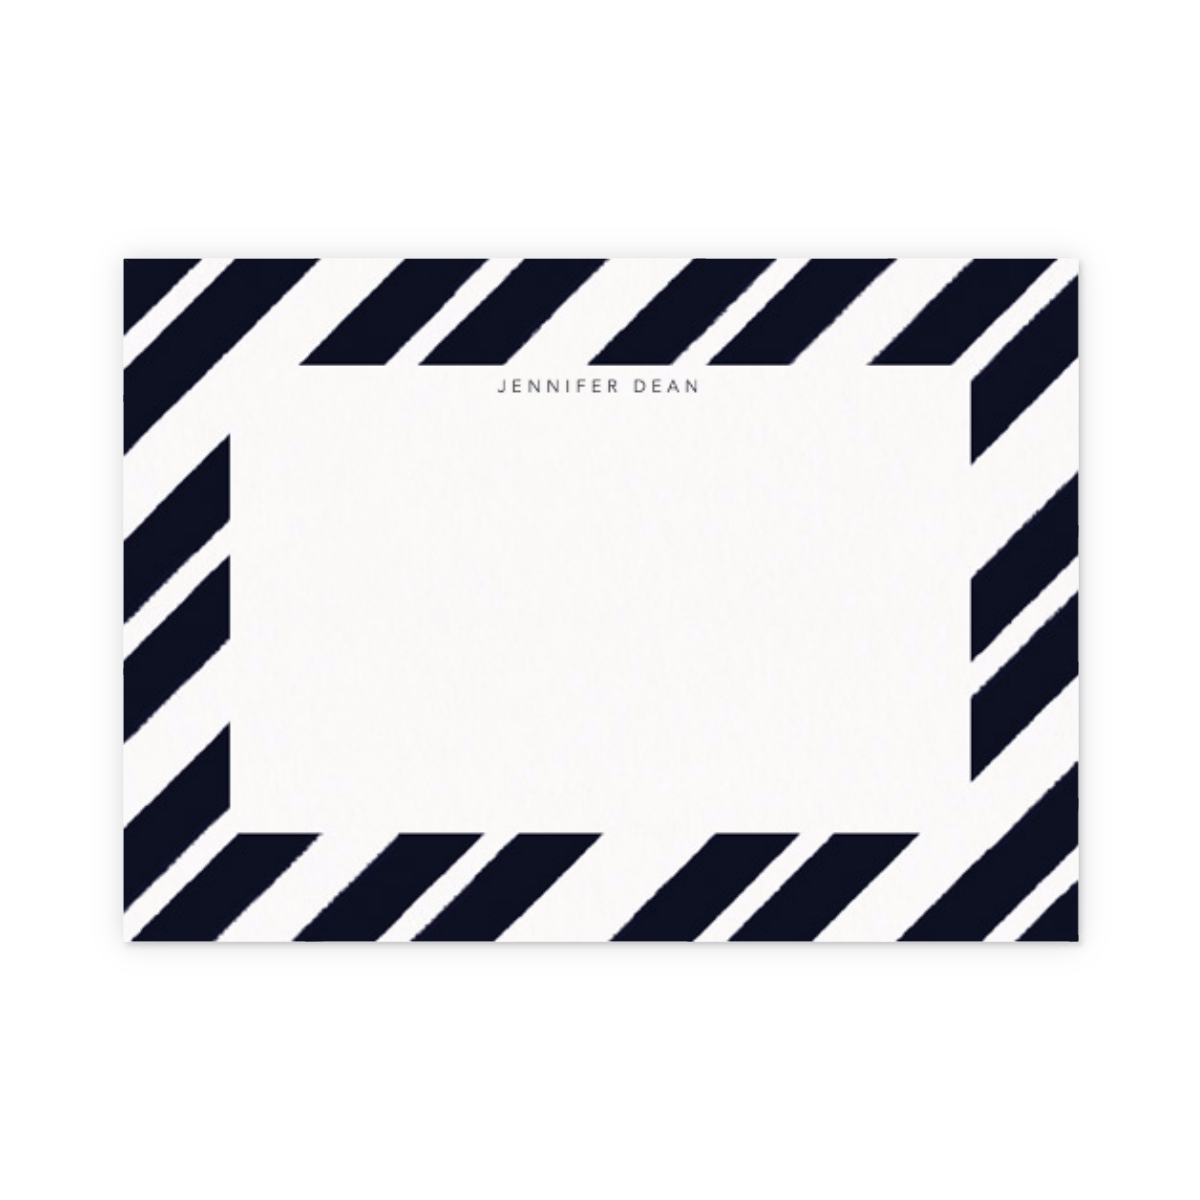 Https%3a%2f%2fwww.papier.com%2fproduct image%2f24075%2f10%2fnavy paint stripe 6025 vorderseite 1498037809.png?ixlib=rb 1.1